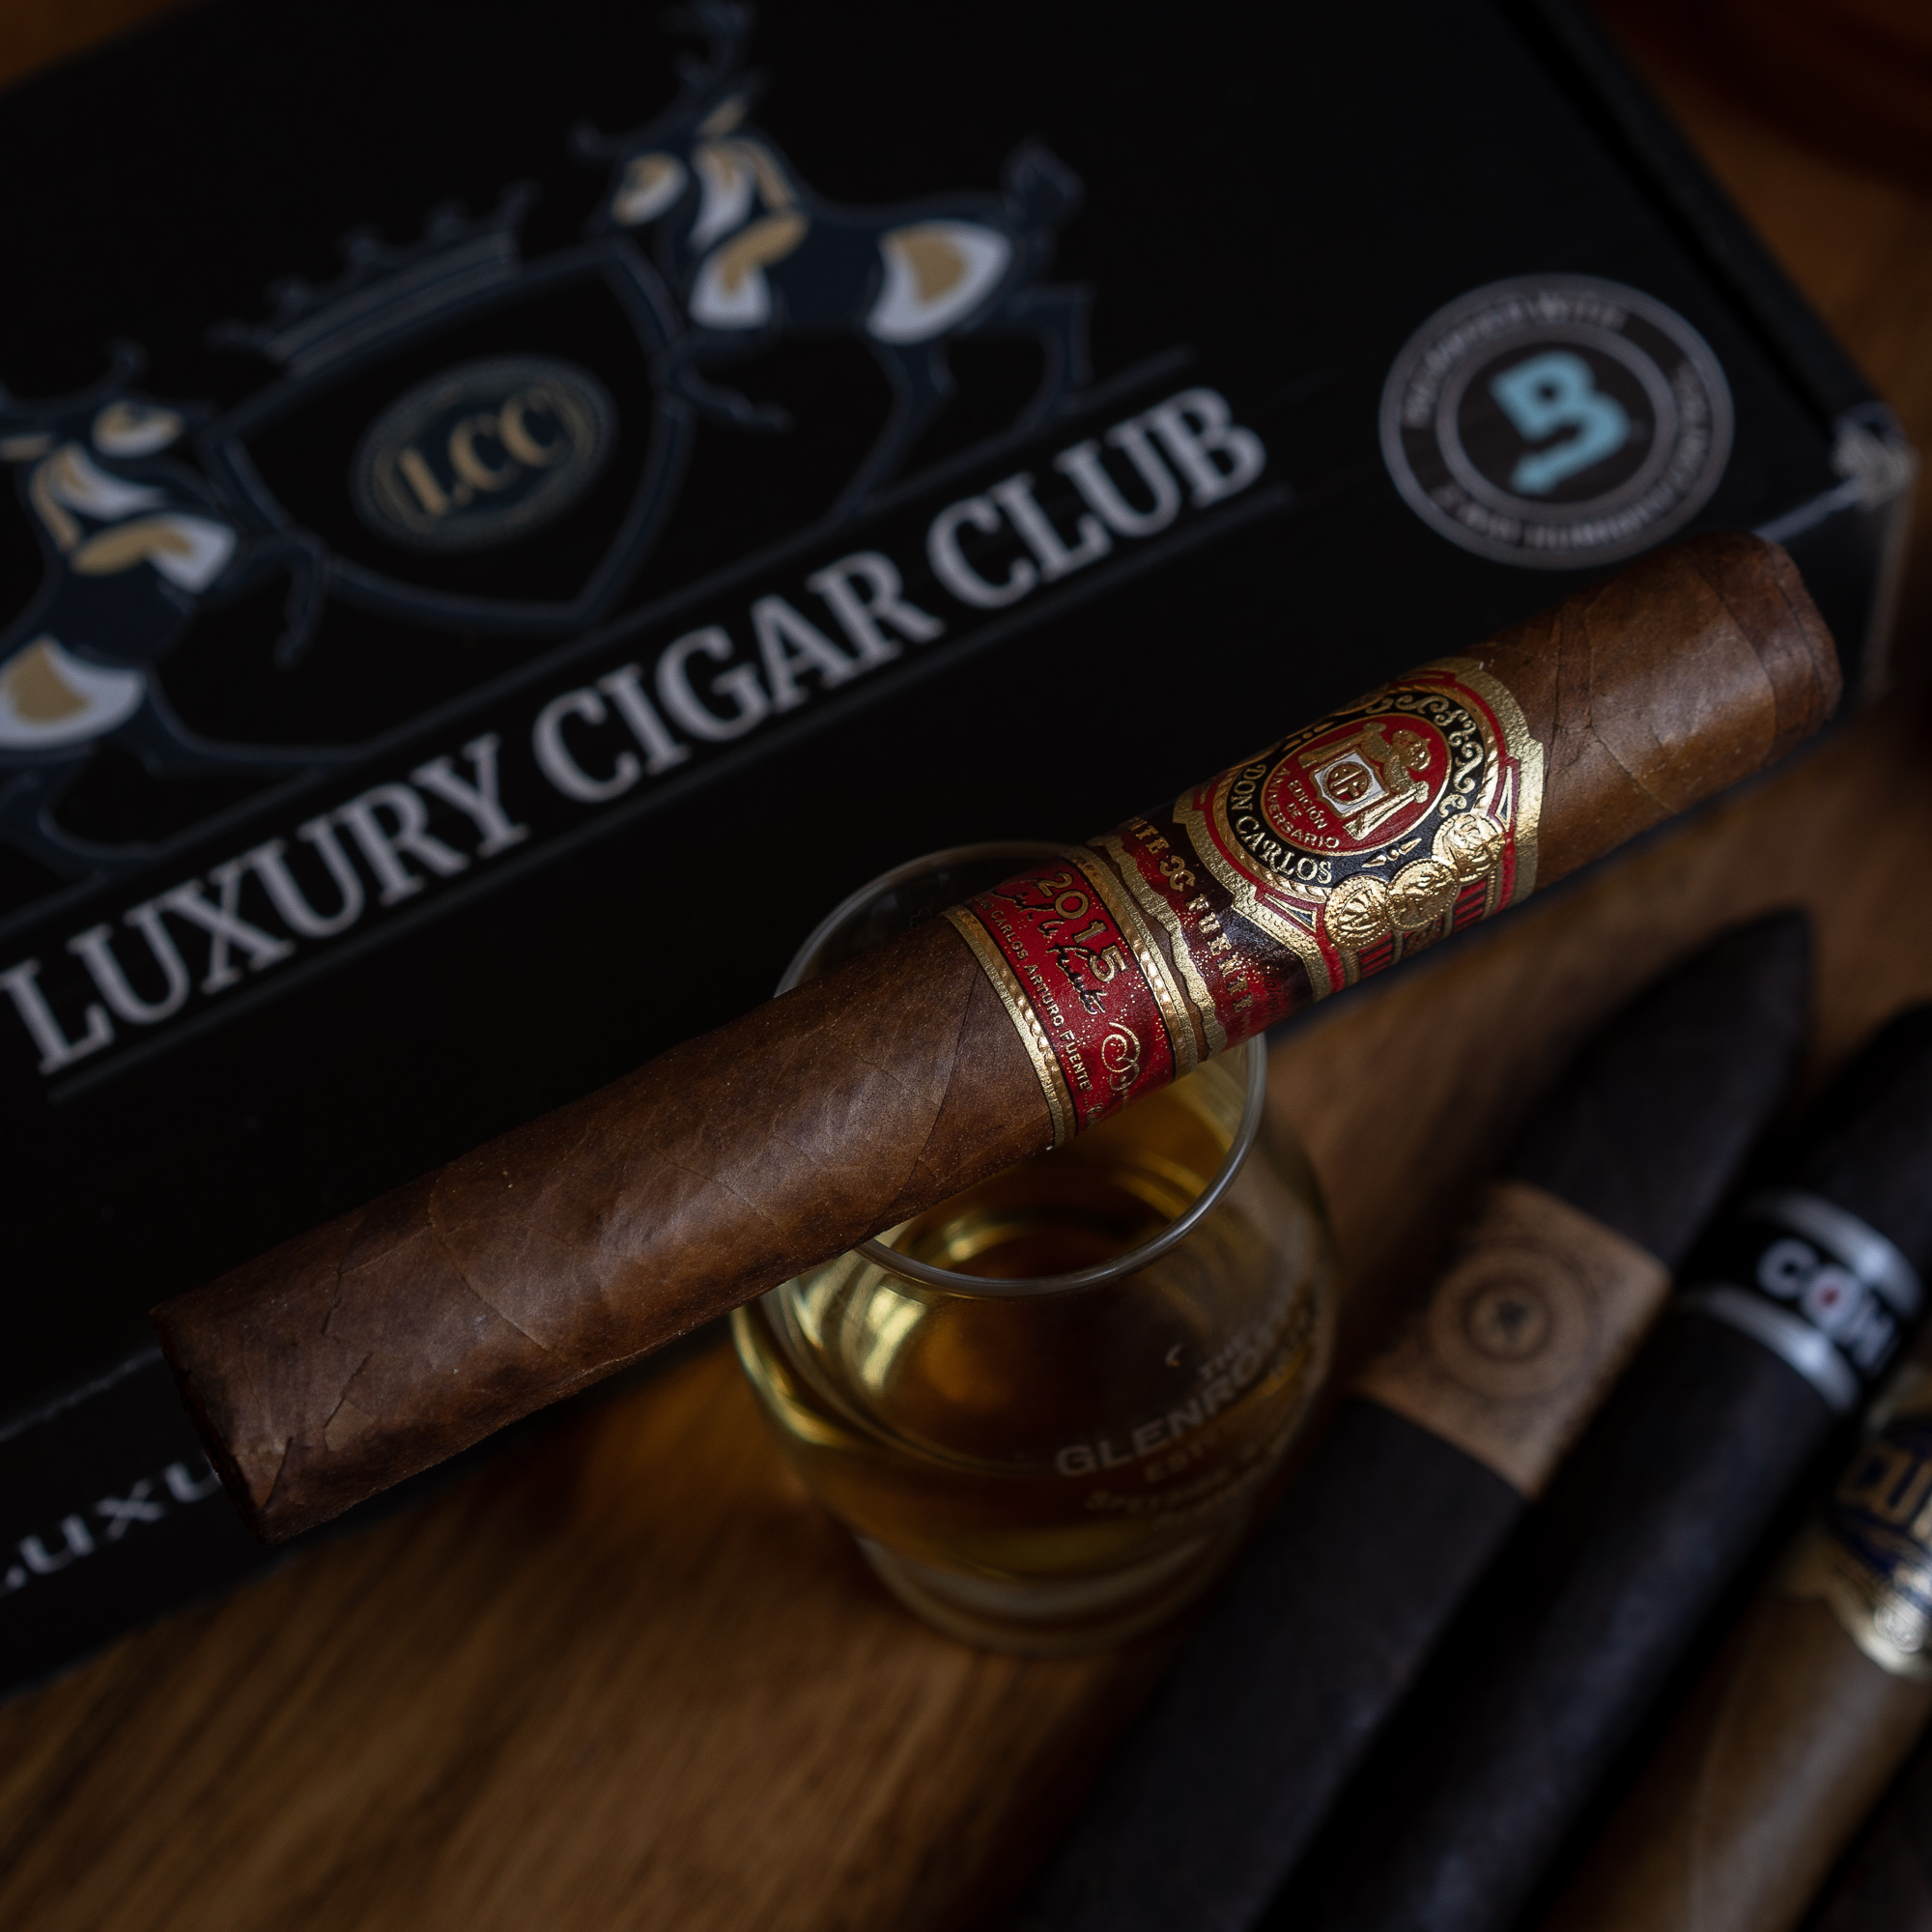 Don Carlos Edicion de Aniversario 2015 review